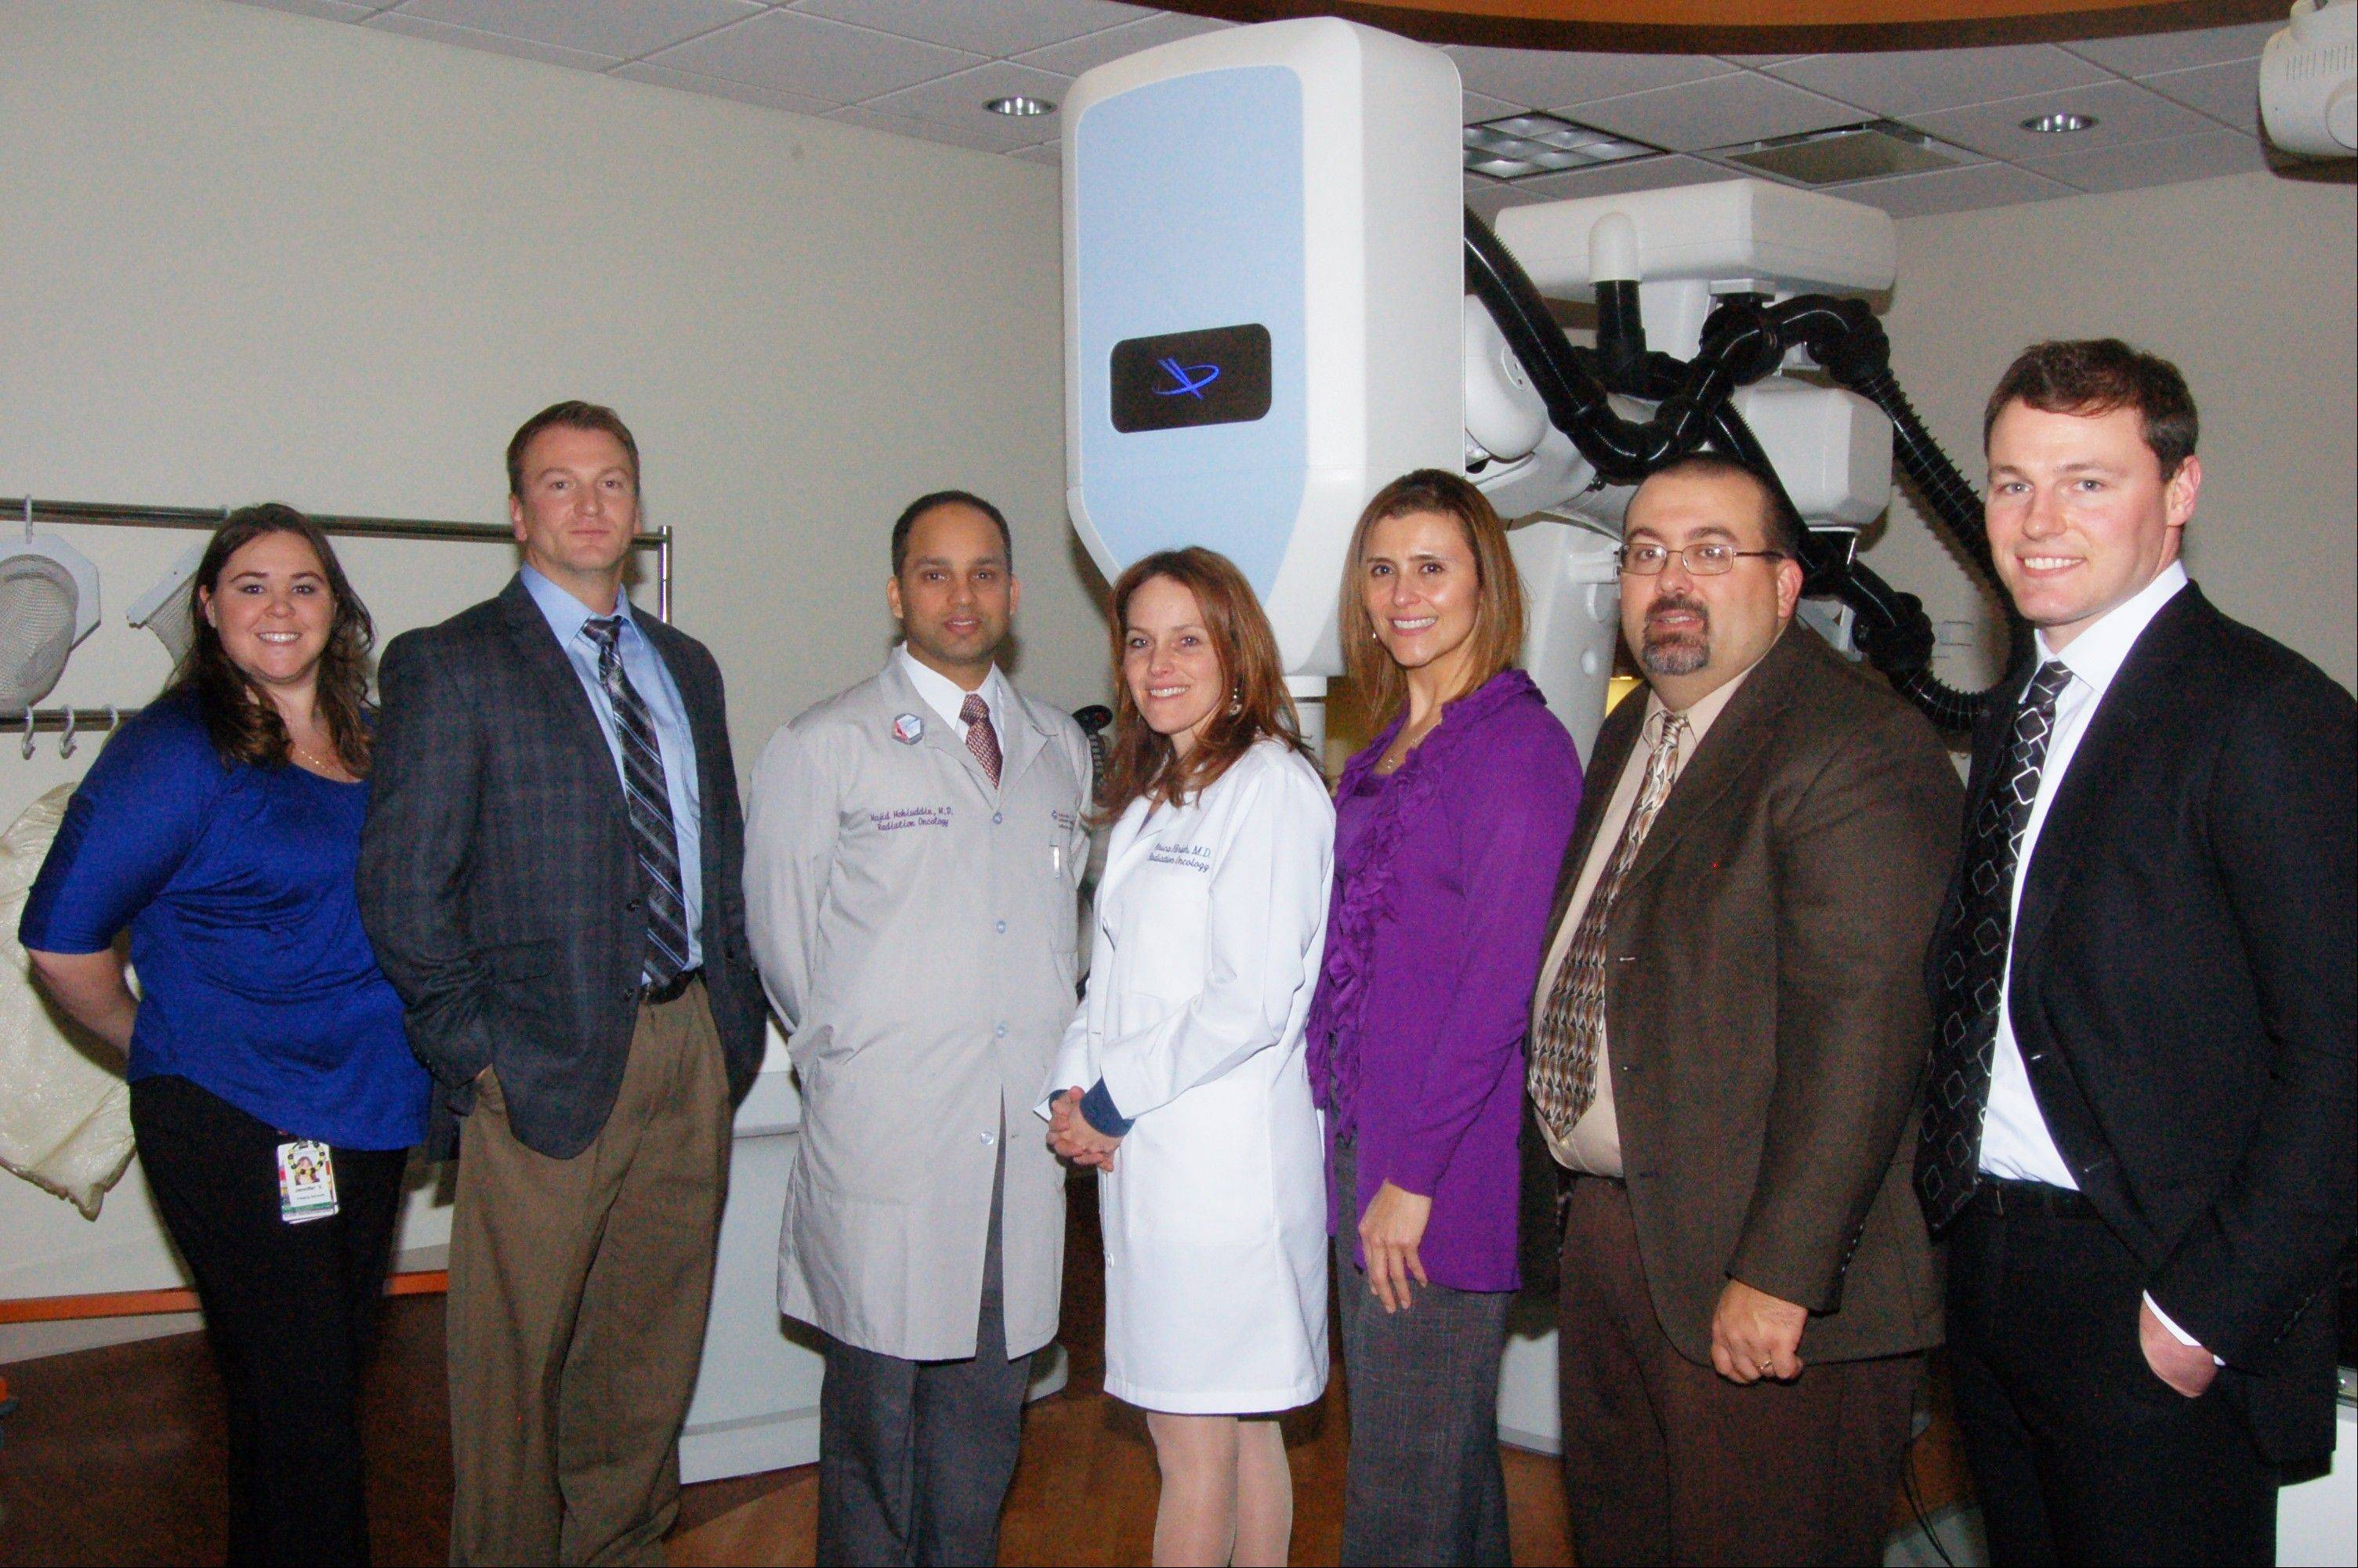 CyberKnife staff, from left, are: Jennifer Villa, Matt Lees, Dr. Majid Mohiuddin, Dr. Arica Hirsch, Linda Green, Scott Withrow and Tony Simon.